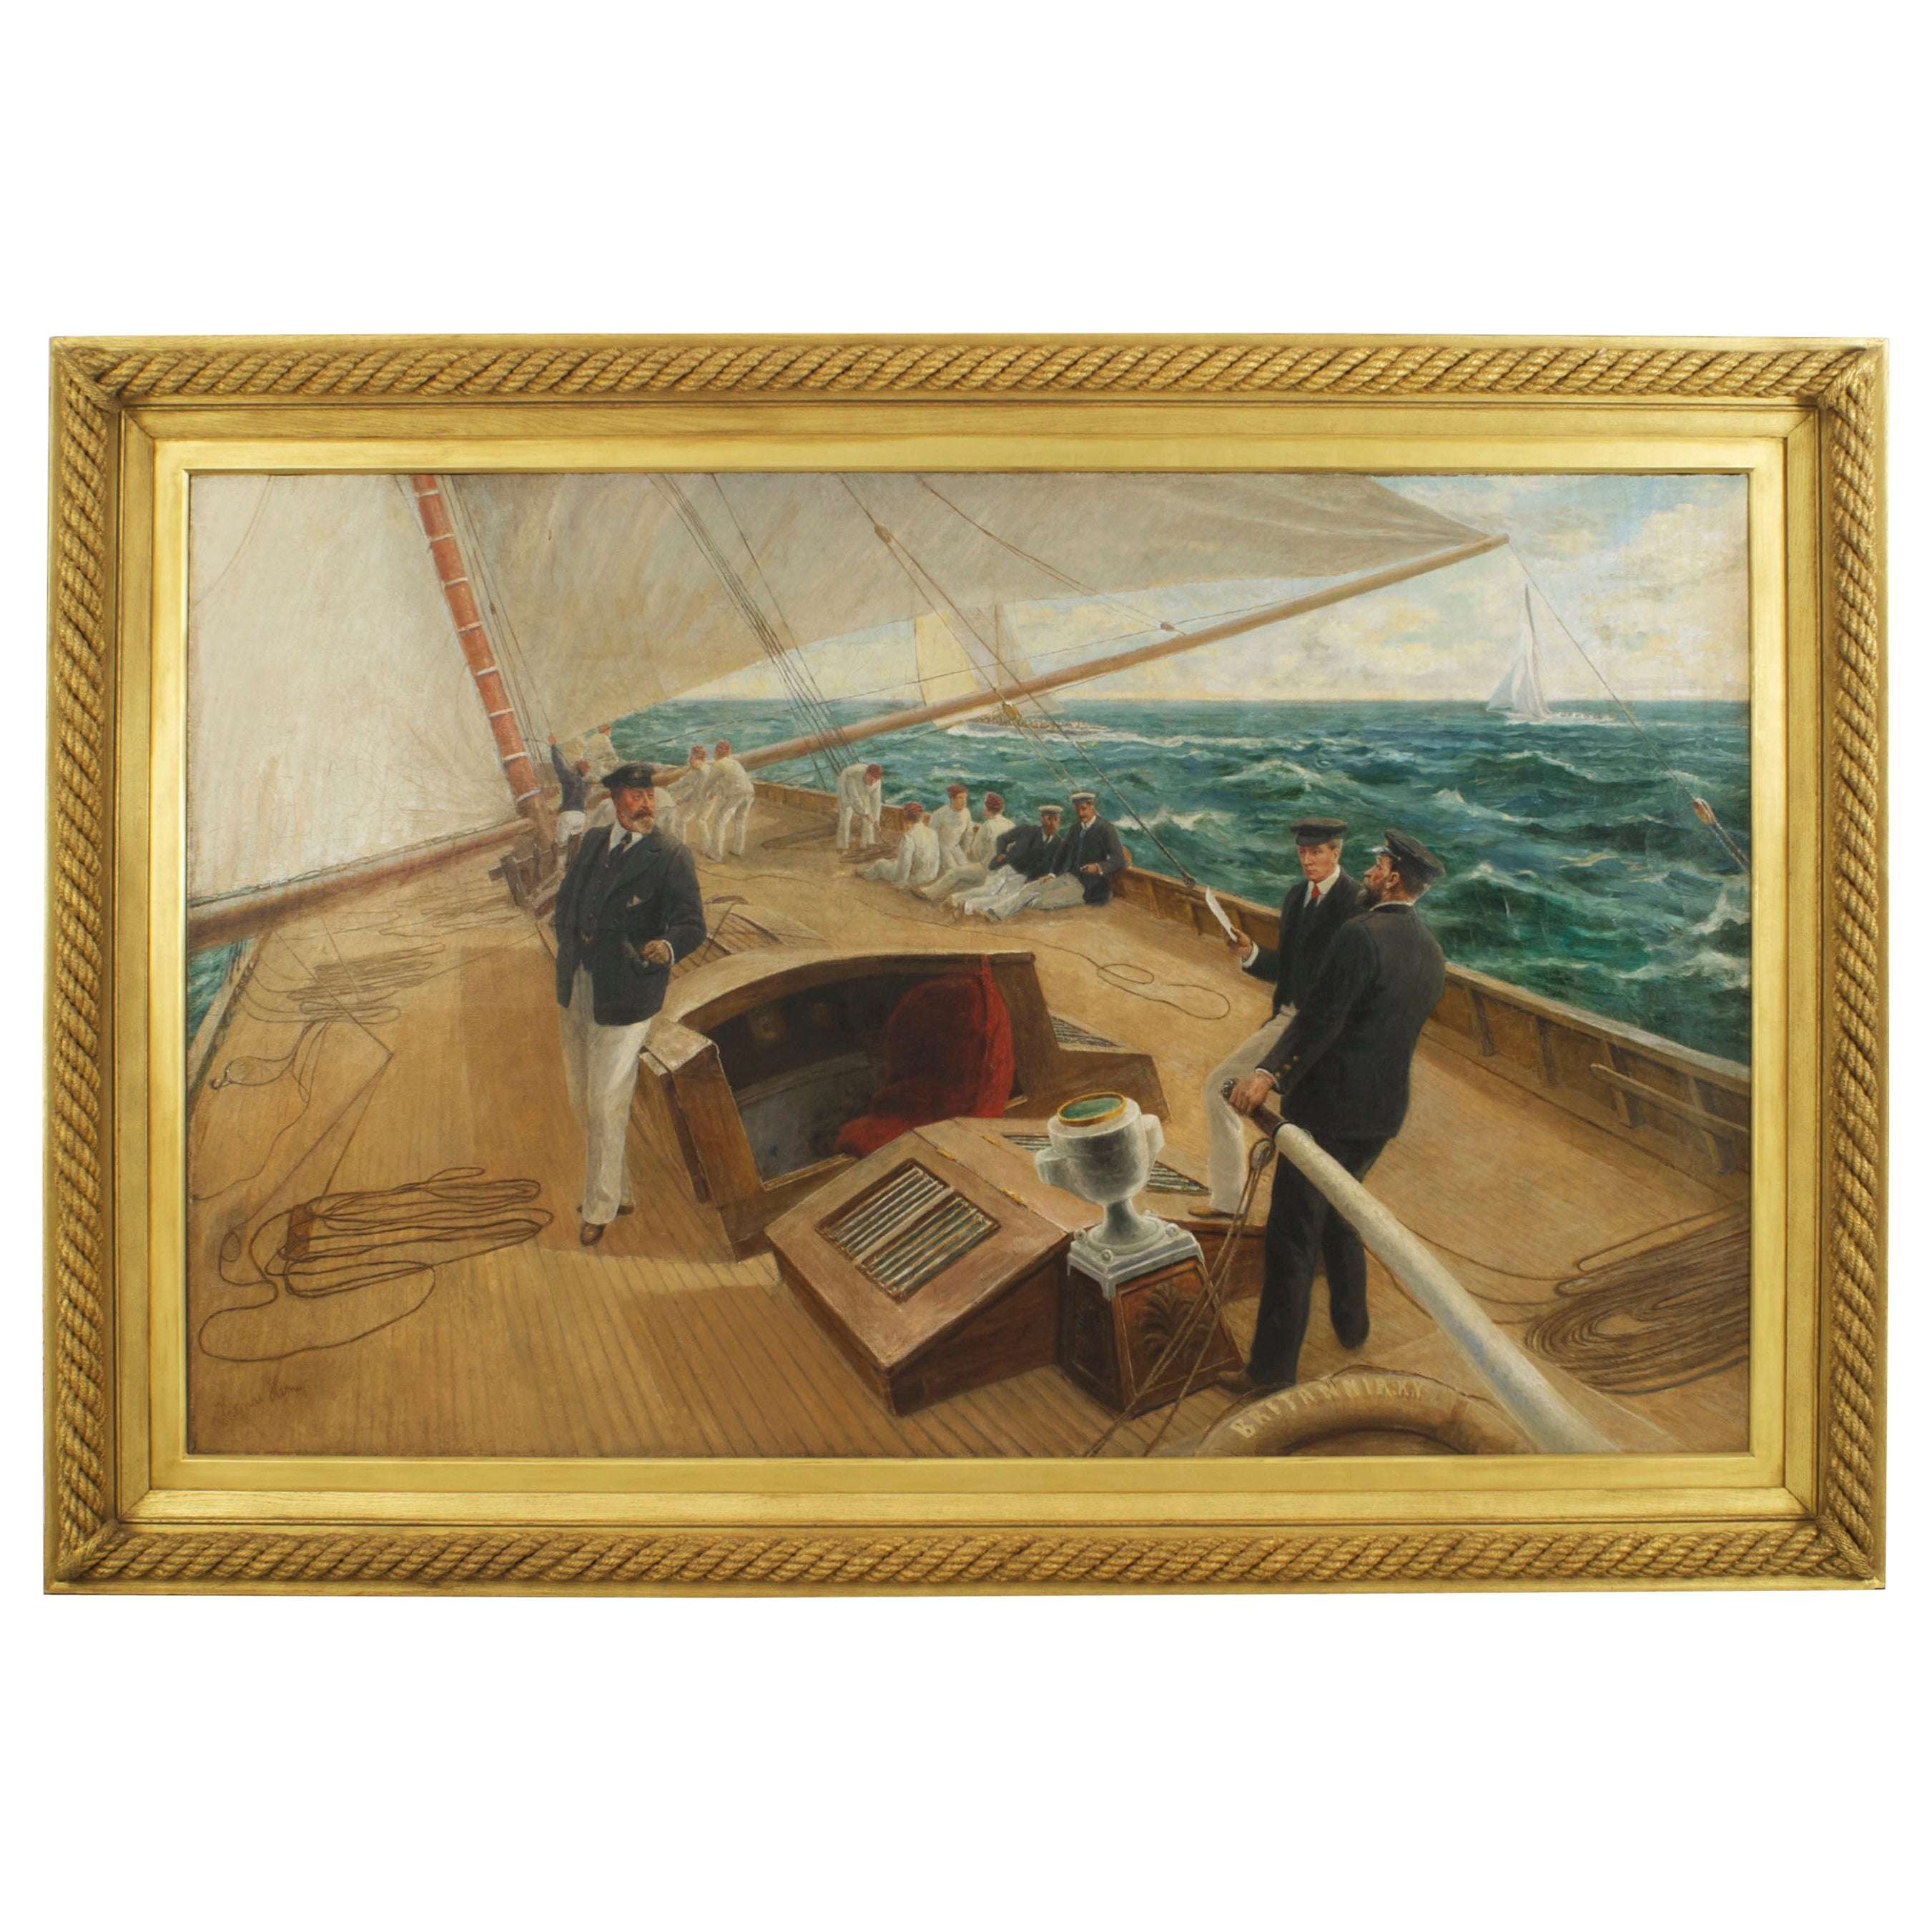 Monumental Seascape Oil Painting, on the Brittania by Tom Henry Painting